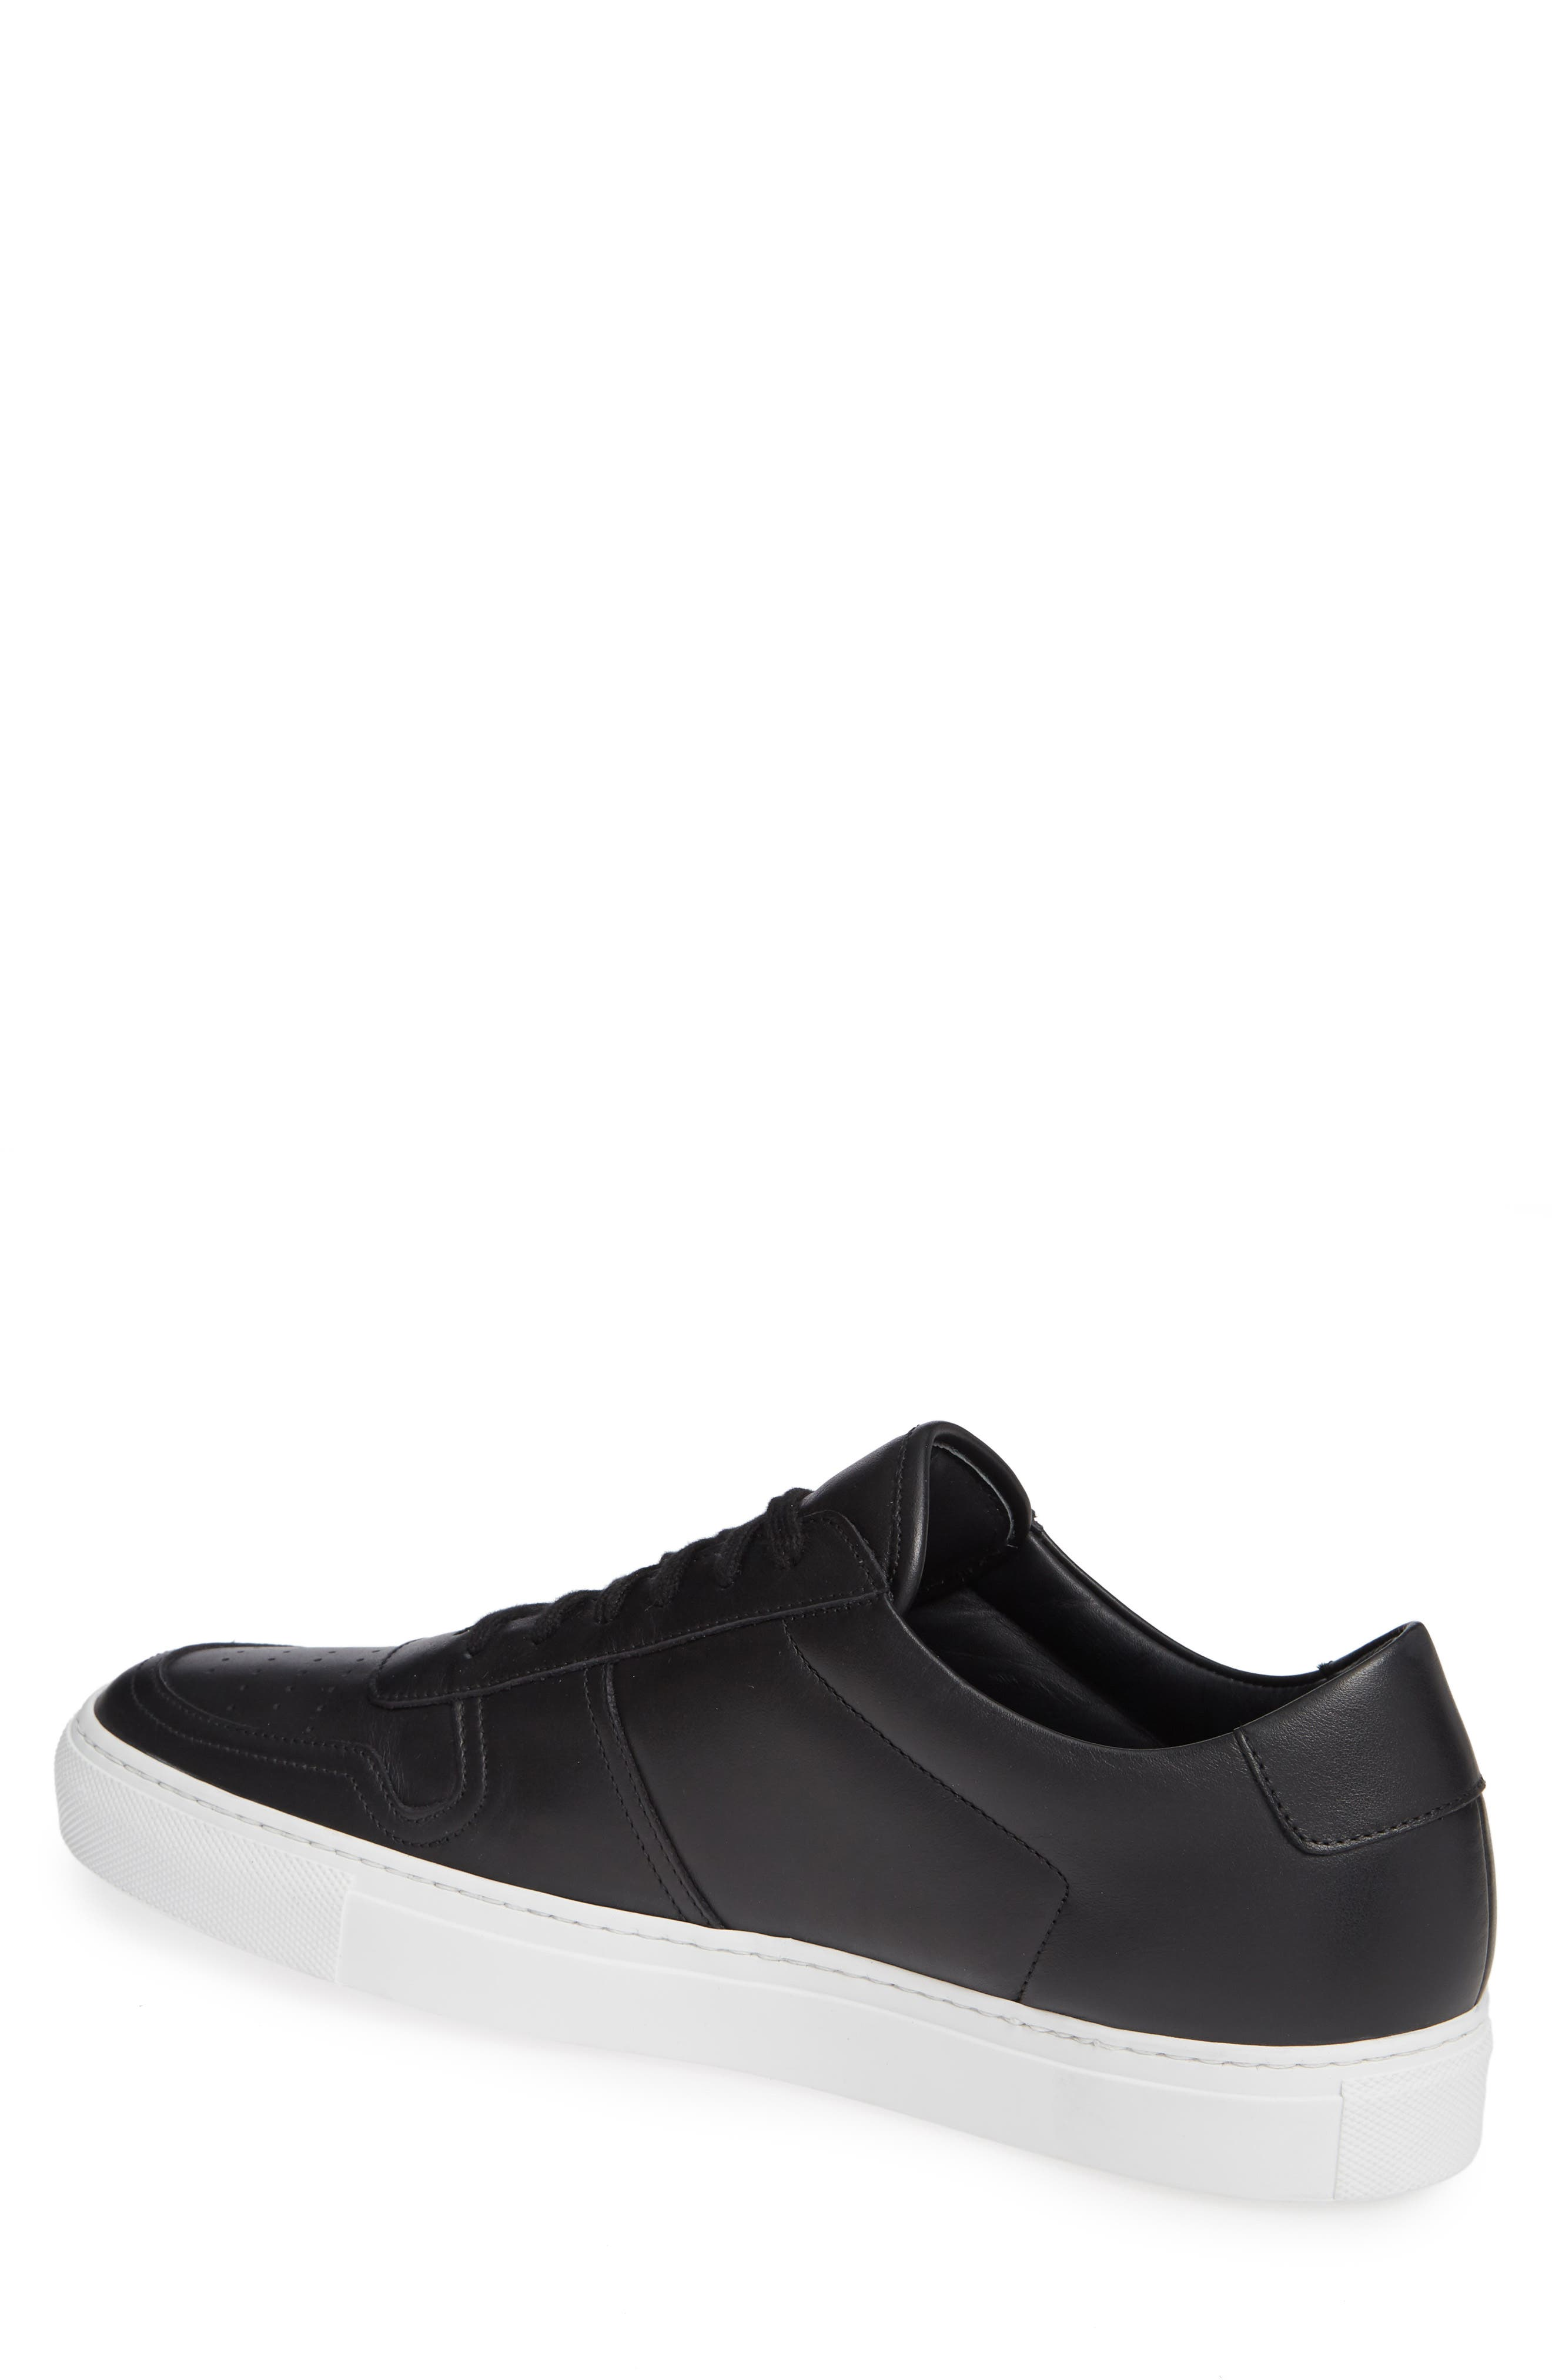 COMMON PROJECTS, Bball Low Top Sneaker, Alternate thumbnail 2, color, BLACK